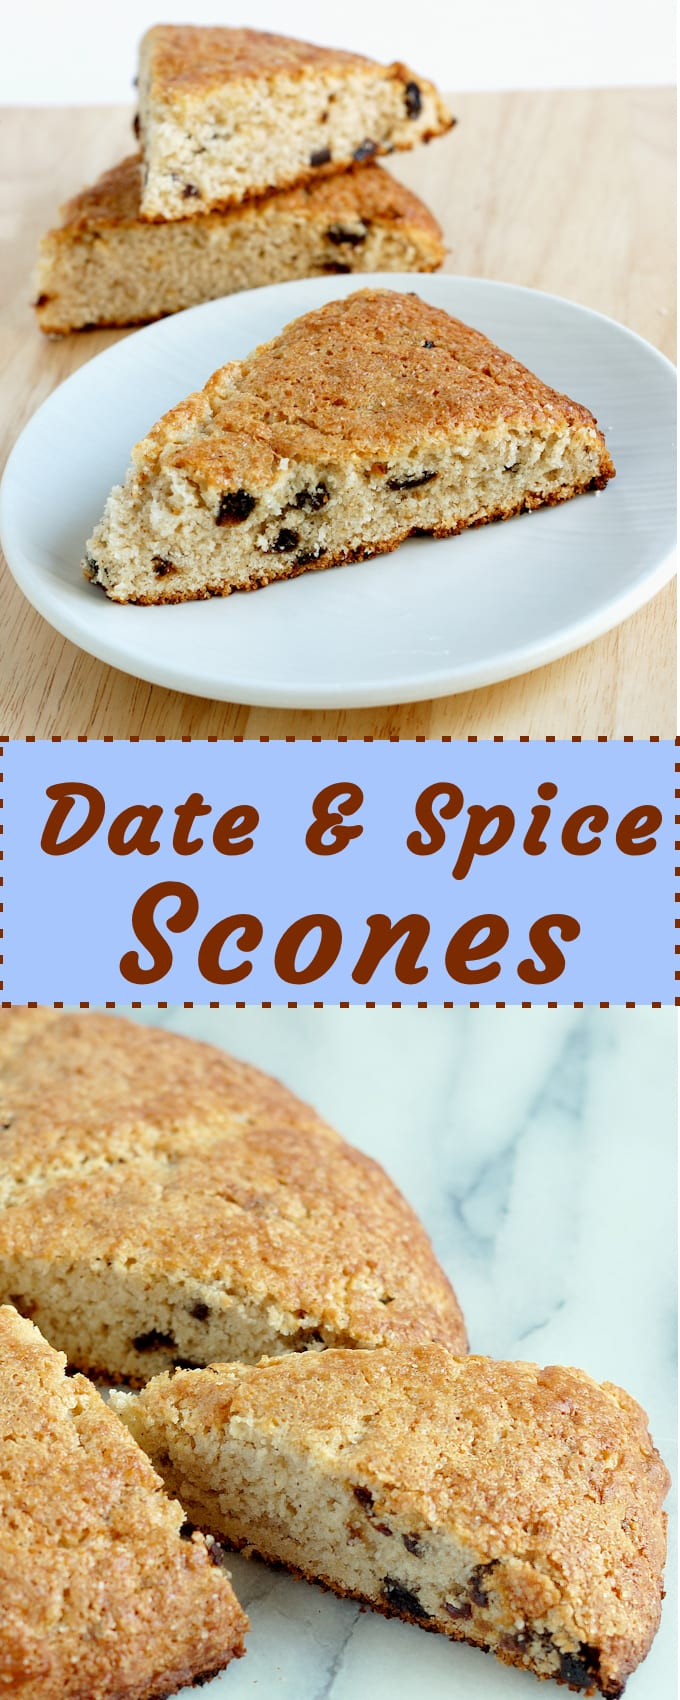 Date Amp Spice Scones For Breakfast Or Brunch Baking Sense